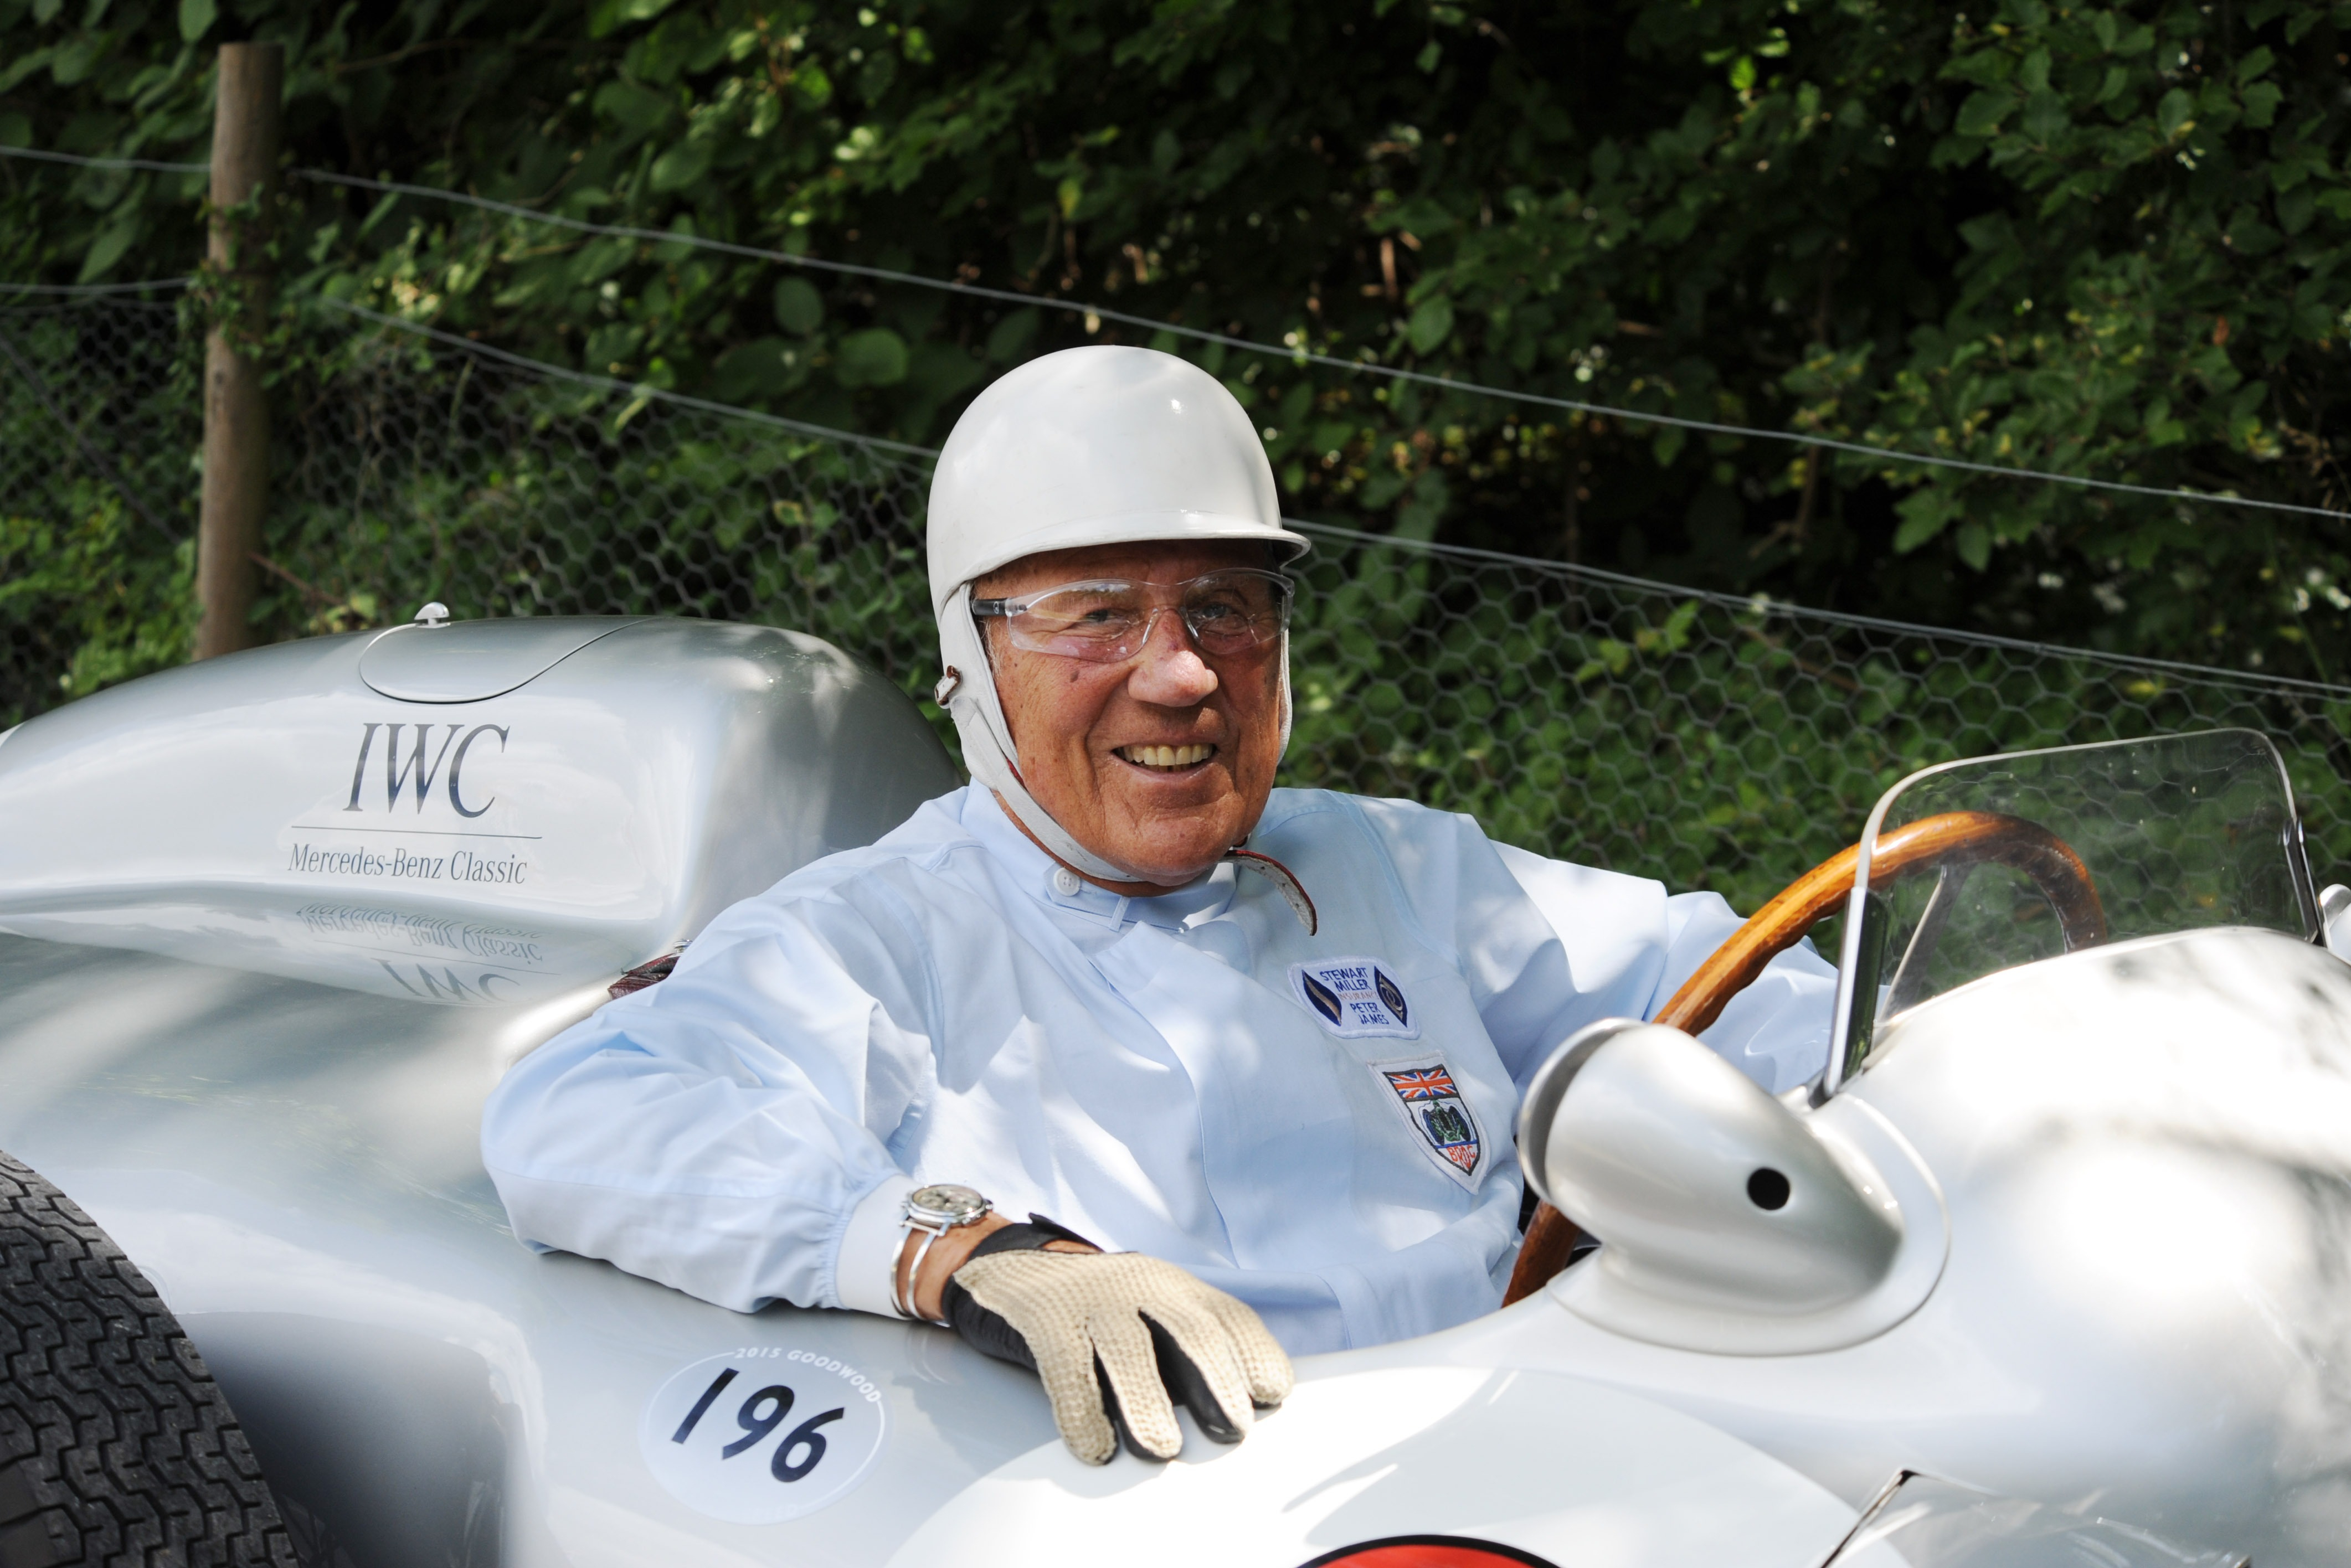 Stirling Moss was a regular visitor to the Goodwood Revival.